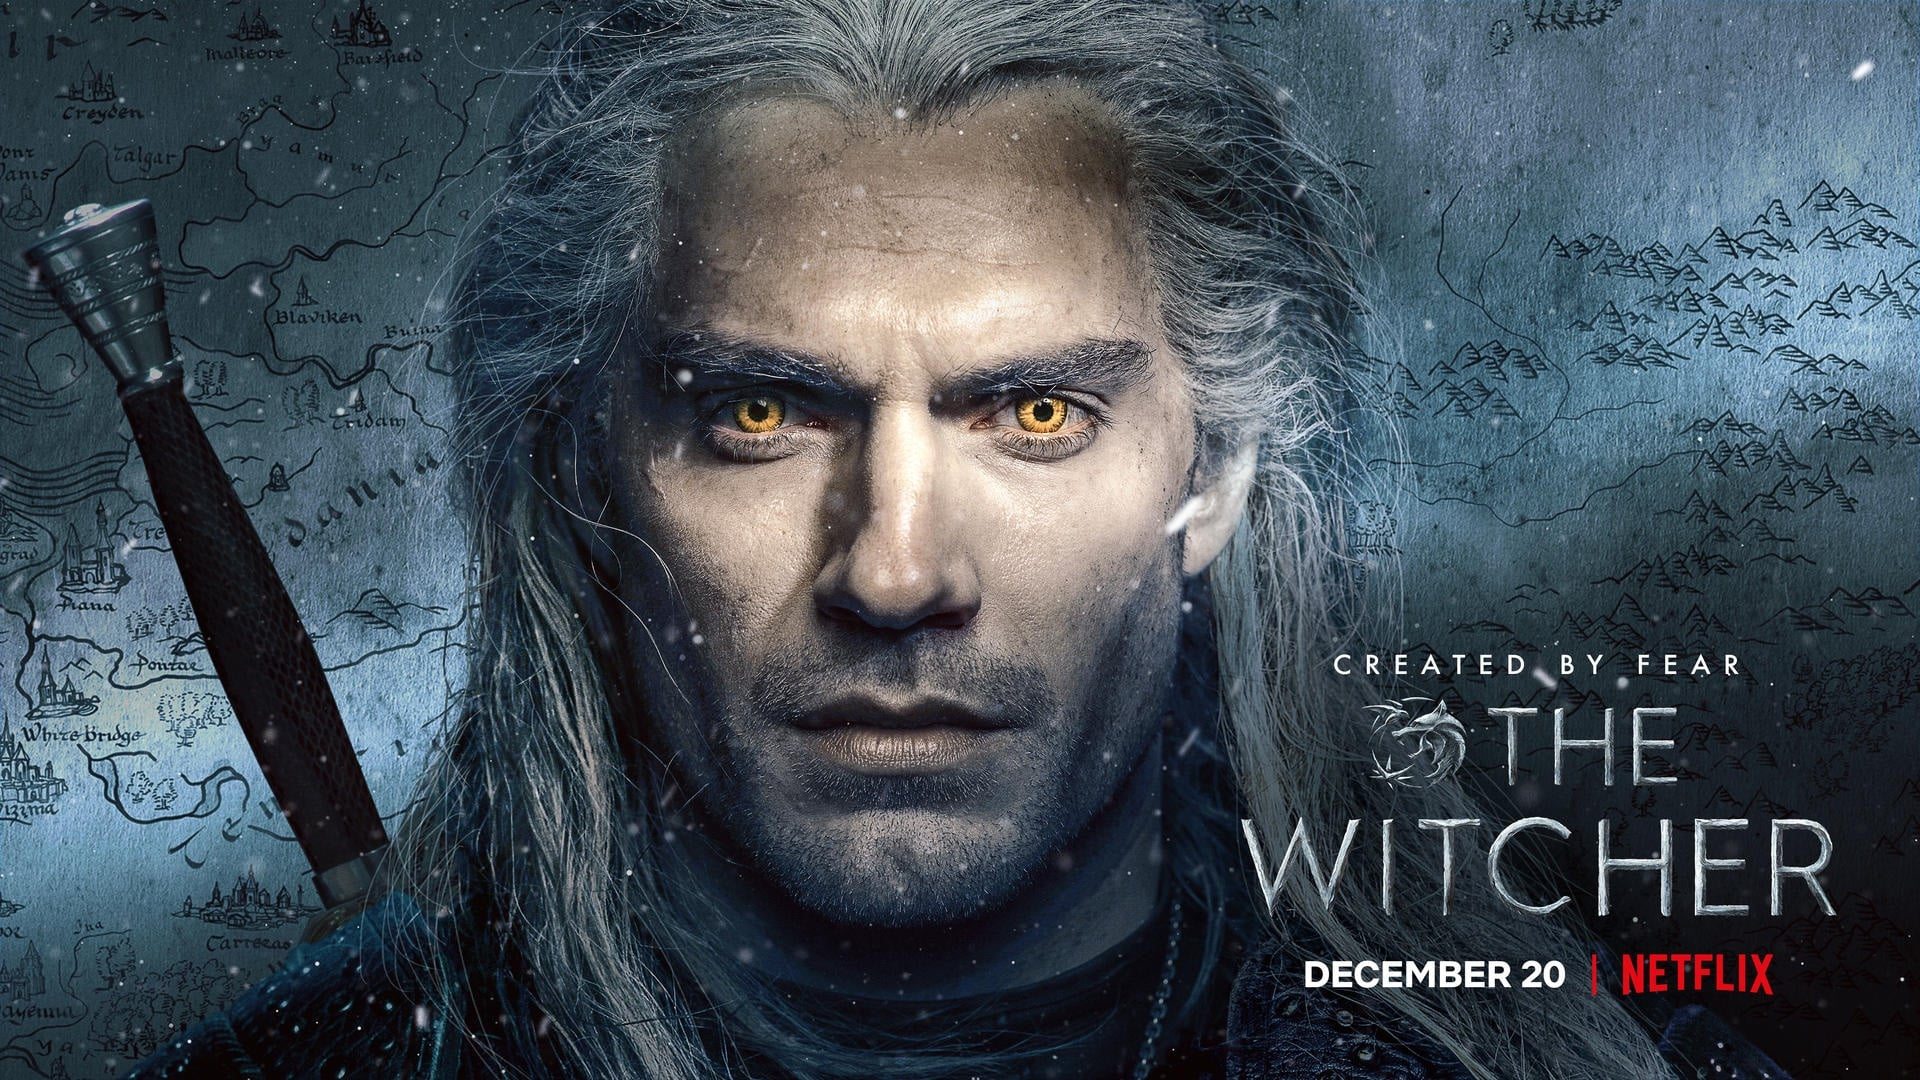 The Witcher Netflix Series Gets 3 Gorgeous Posters and a Sword Fight Scene